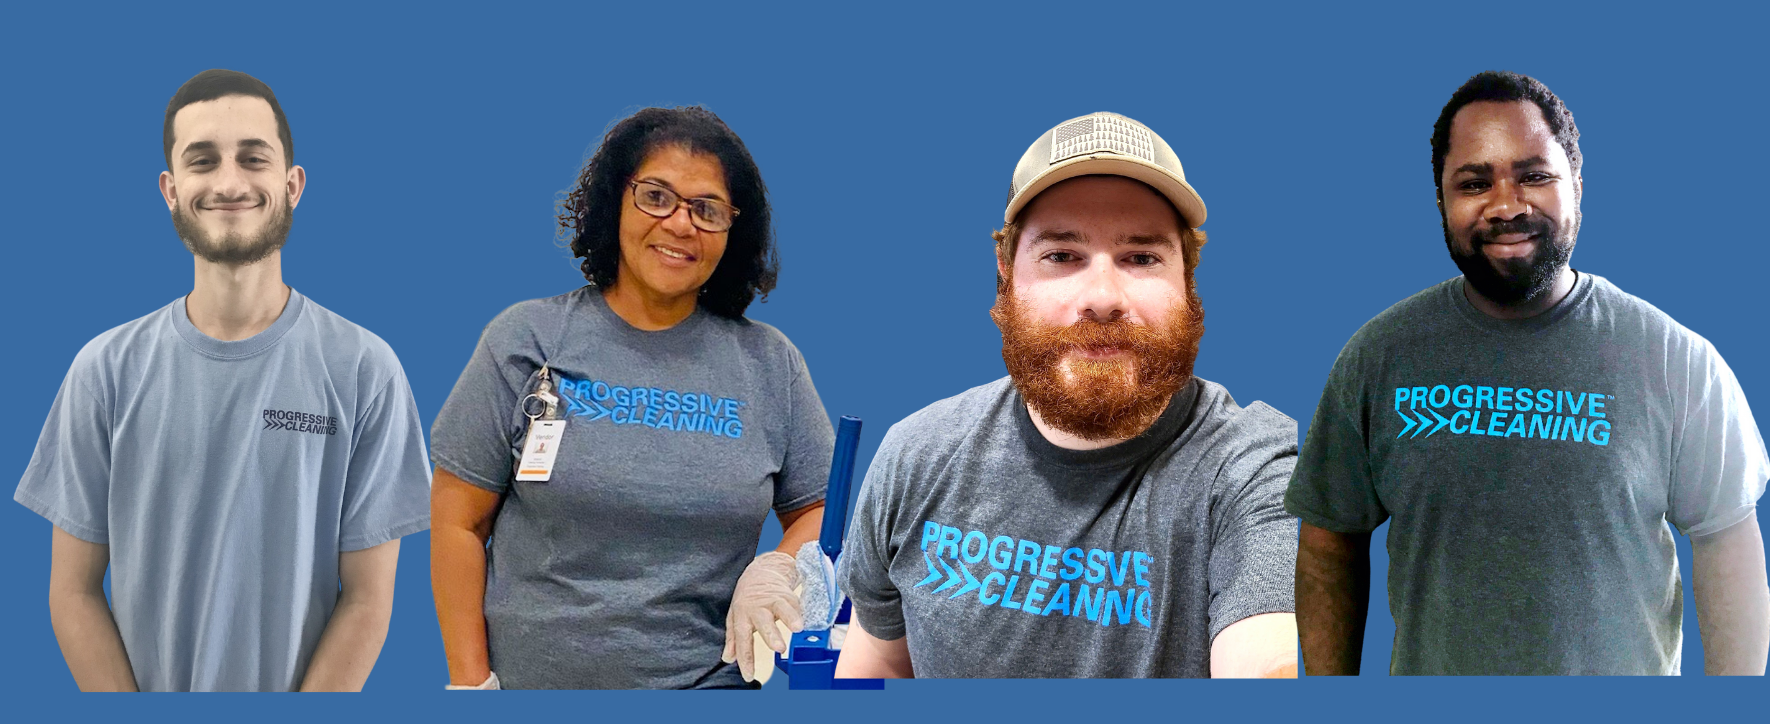 facility careers at progressive cleaning LLC